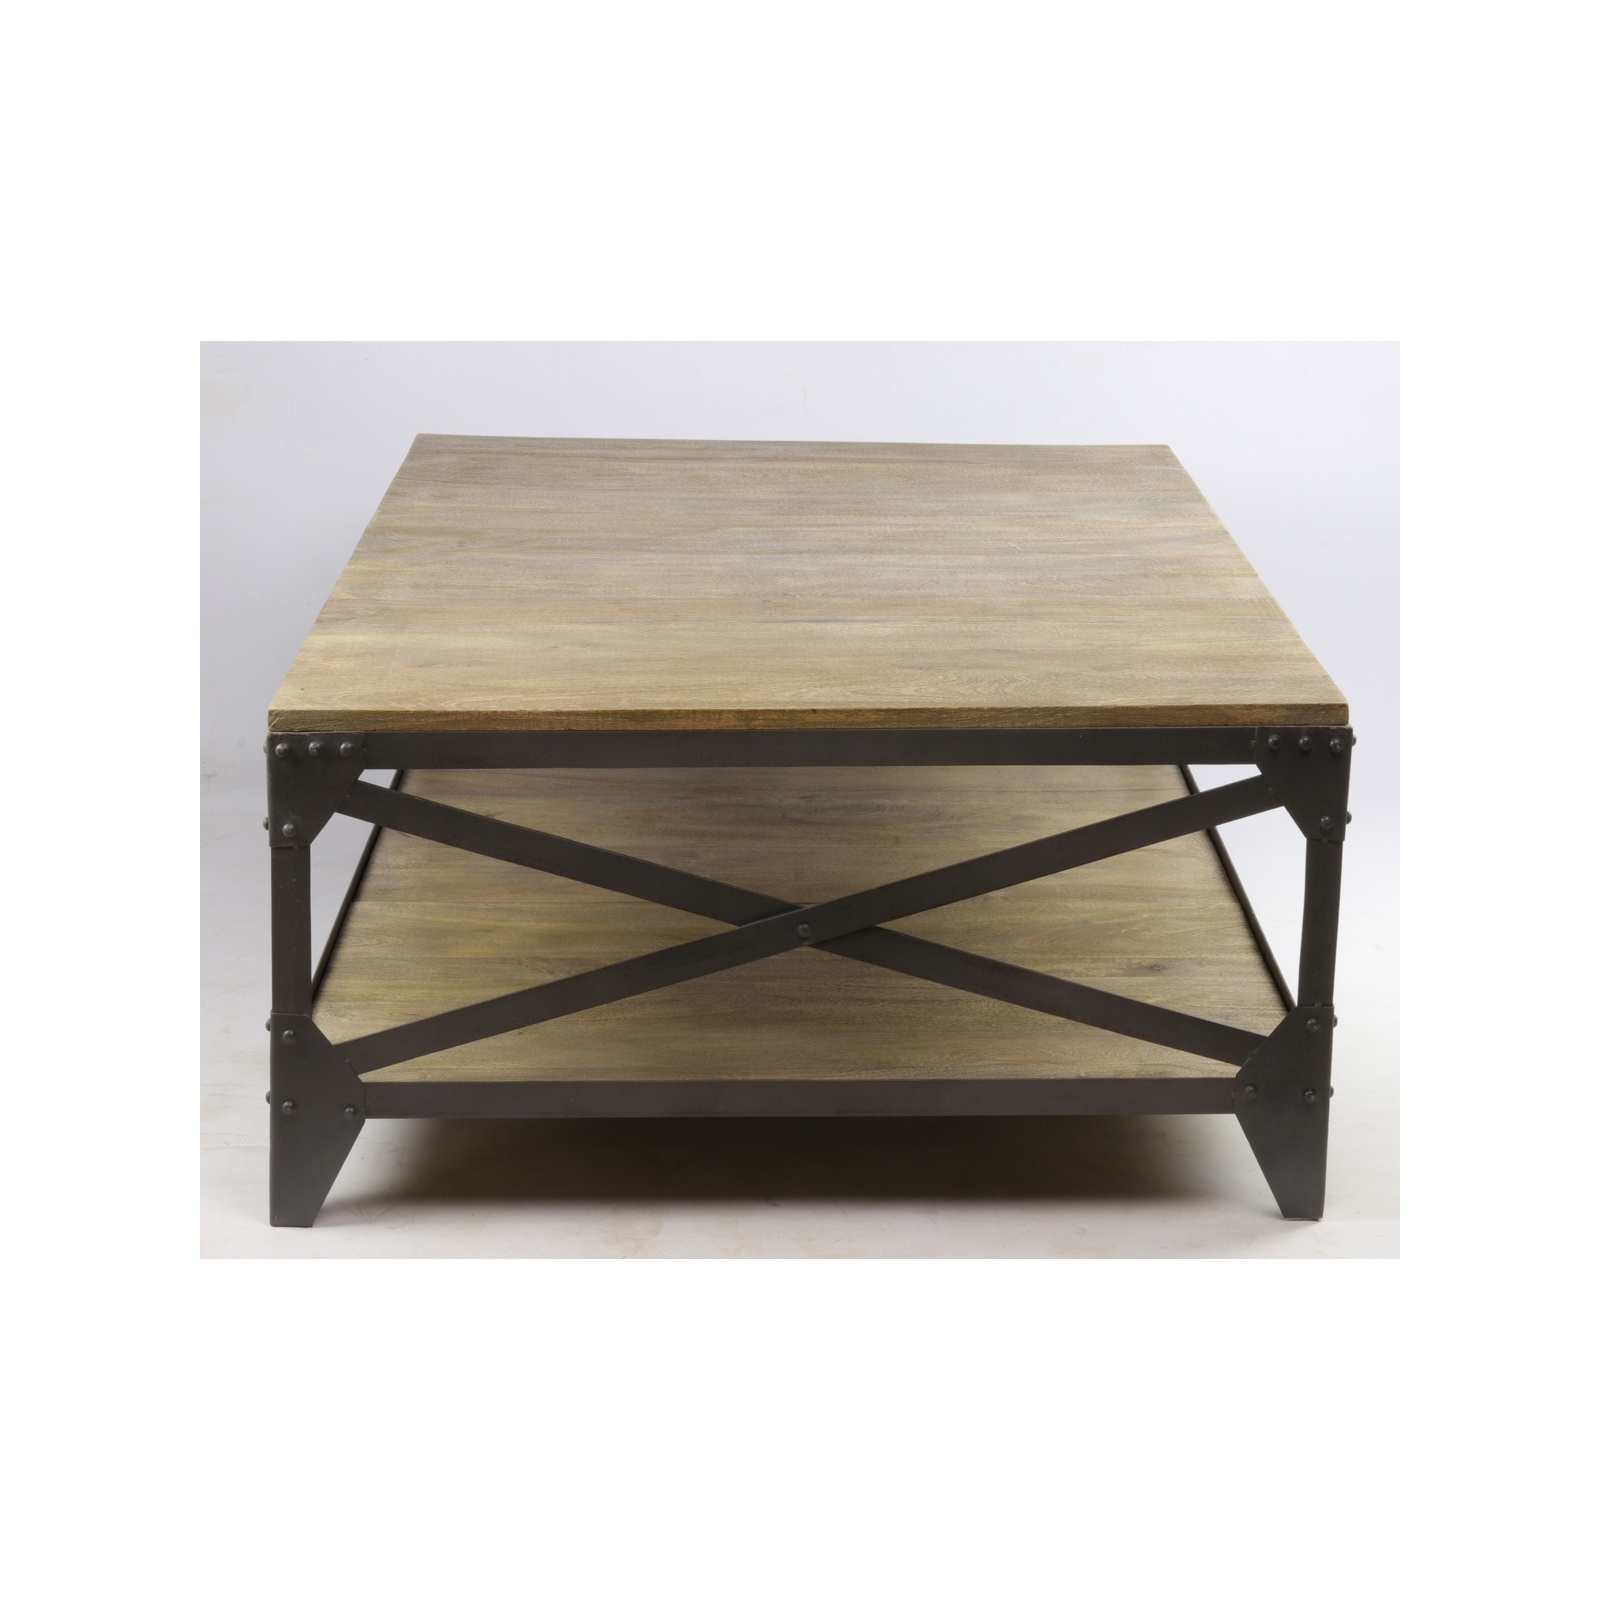 Table Basse Bois Fer Table Basse Industrielle